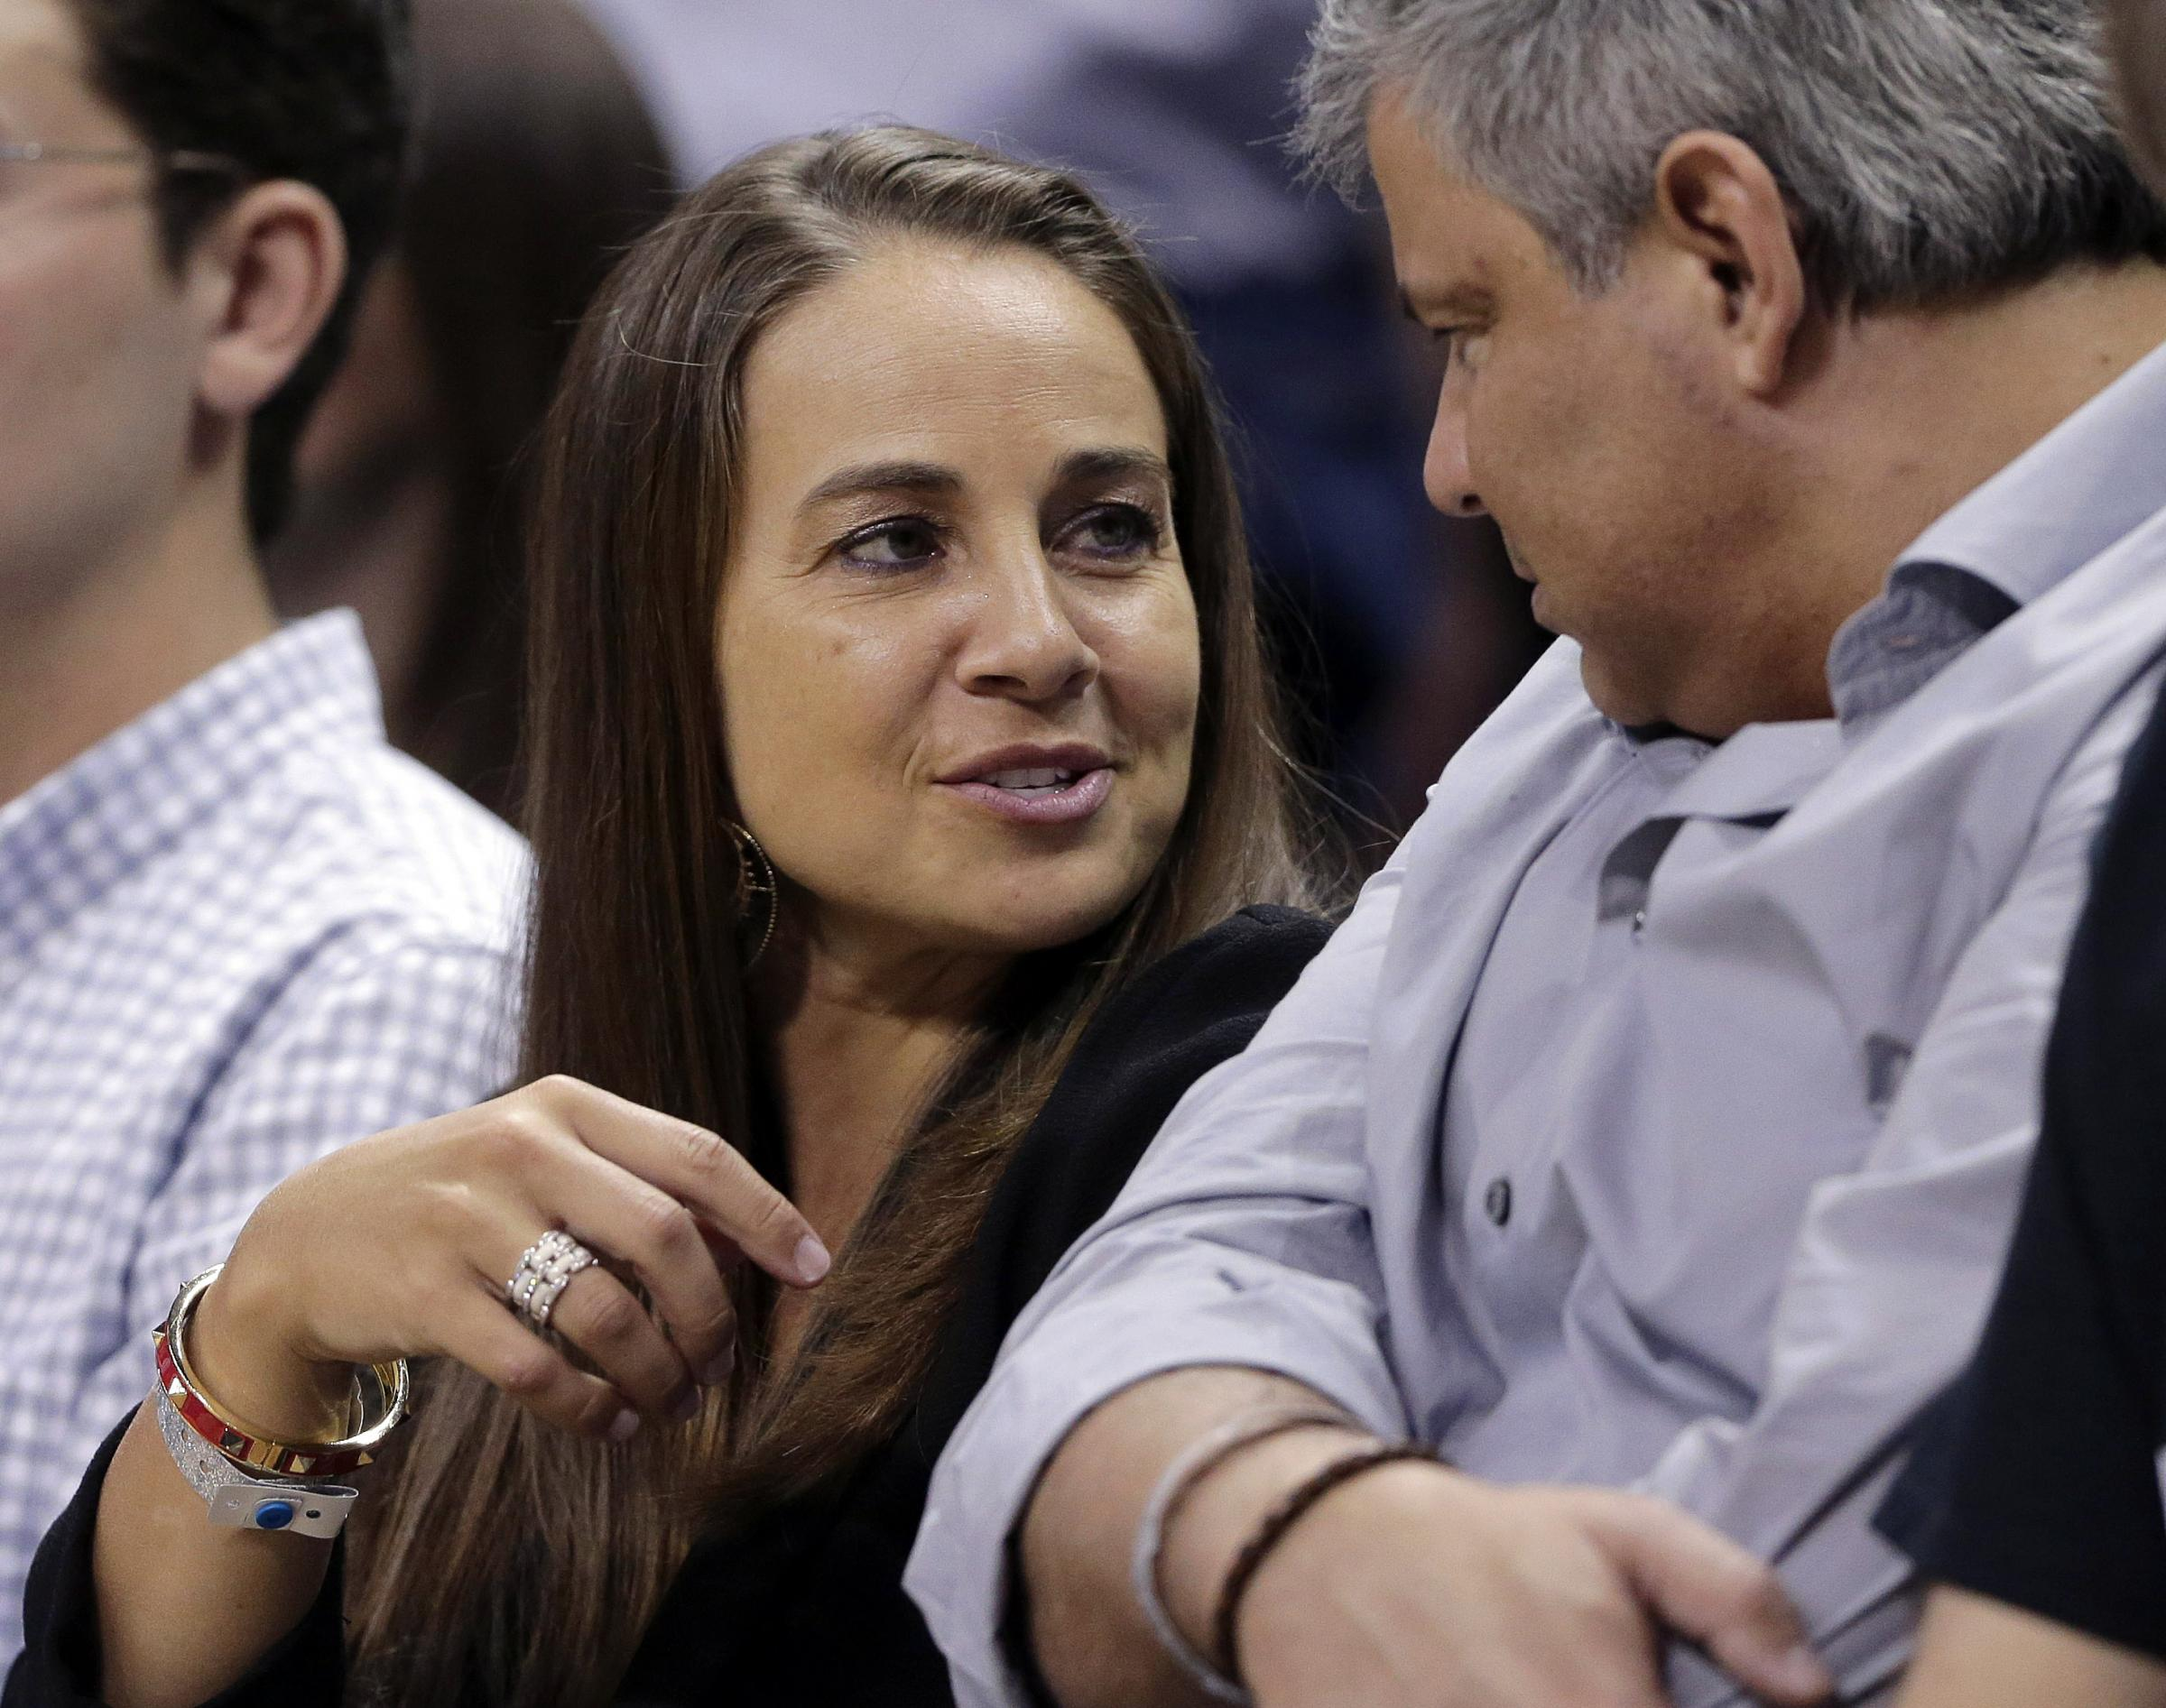 dating coach san antonio Becky hammon became the national basketball associations' first female full- time coach tuesday when the san antonio spur's hired her for the 2014-15 nba season even though this is a history-making event, all most twitter users could talk about was whether or not spurs point guard tony parker, who.